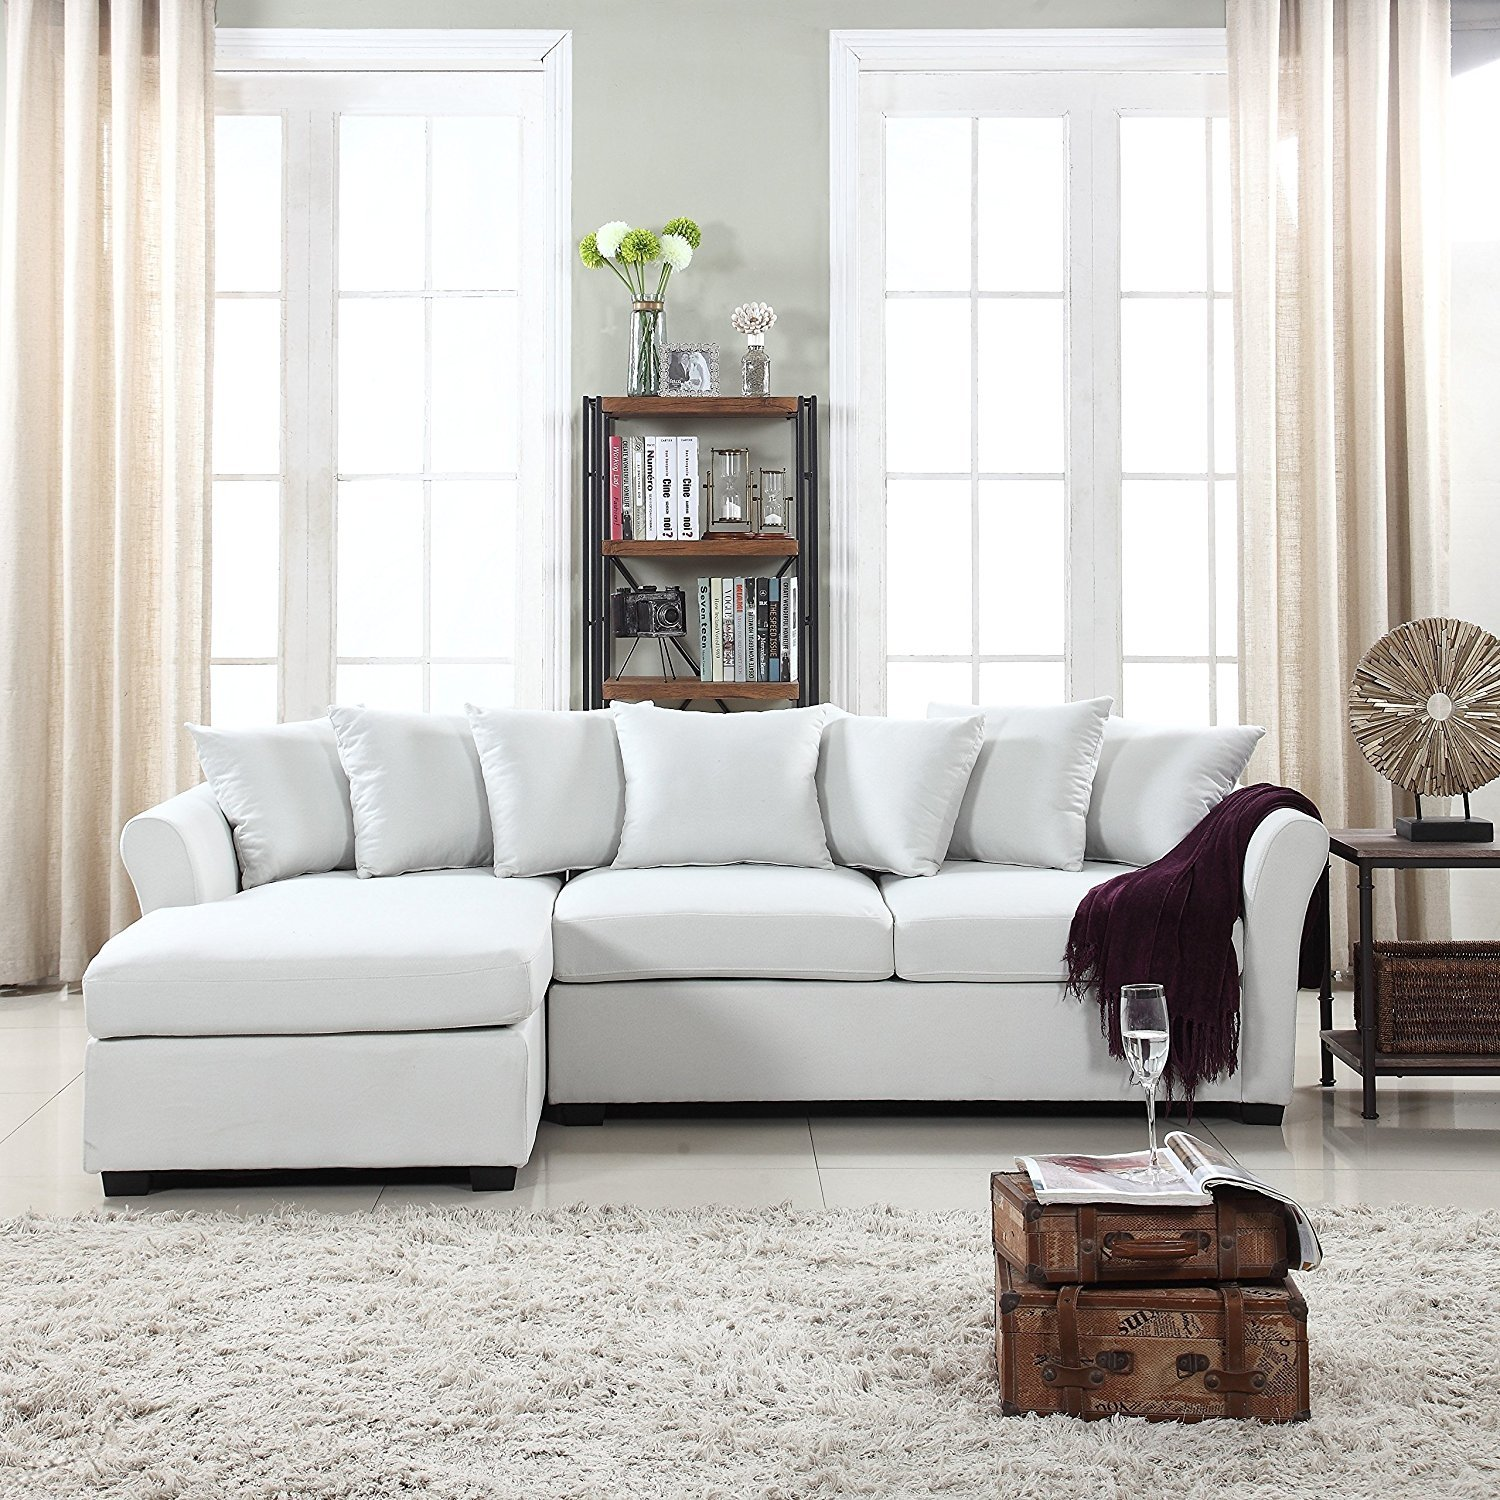 Ebay Sofas Details About Modern Large Fabric Sectional Sofa L Shape Couch Extra Wide Chaise Beige